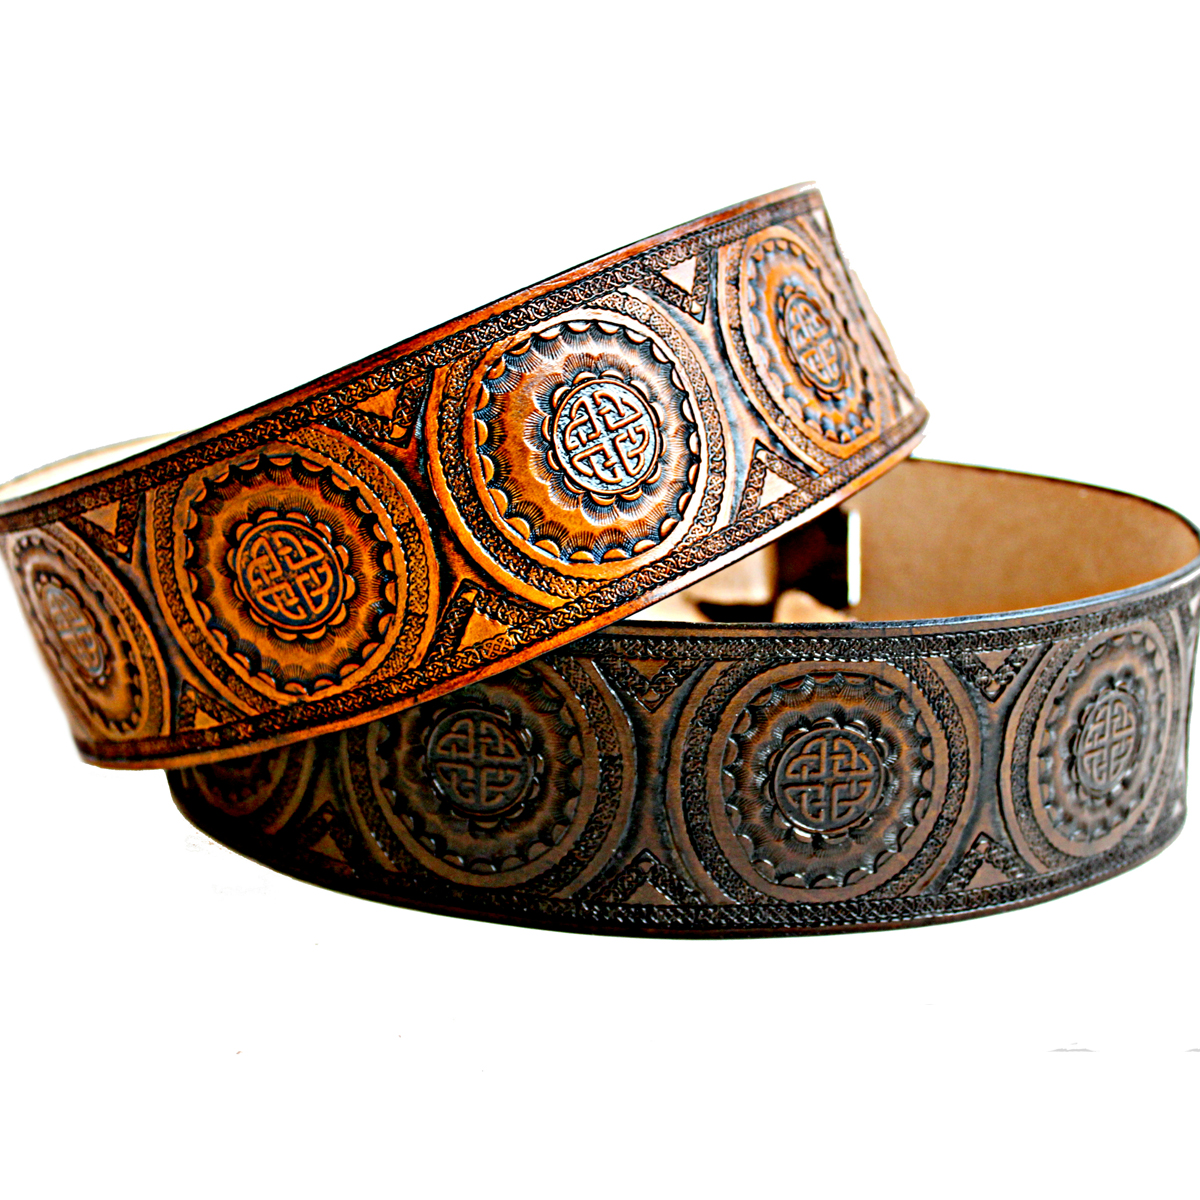 celtic-knot-tooled-leather-guitar-strap-the-leather-smithy_1